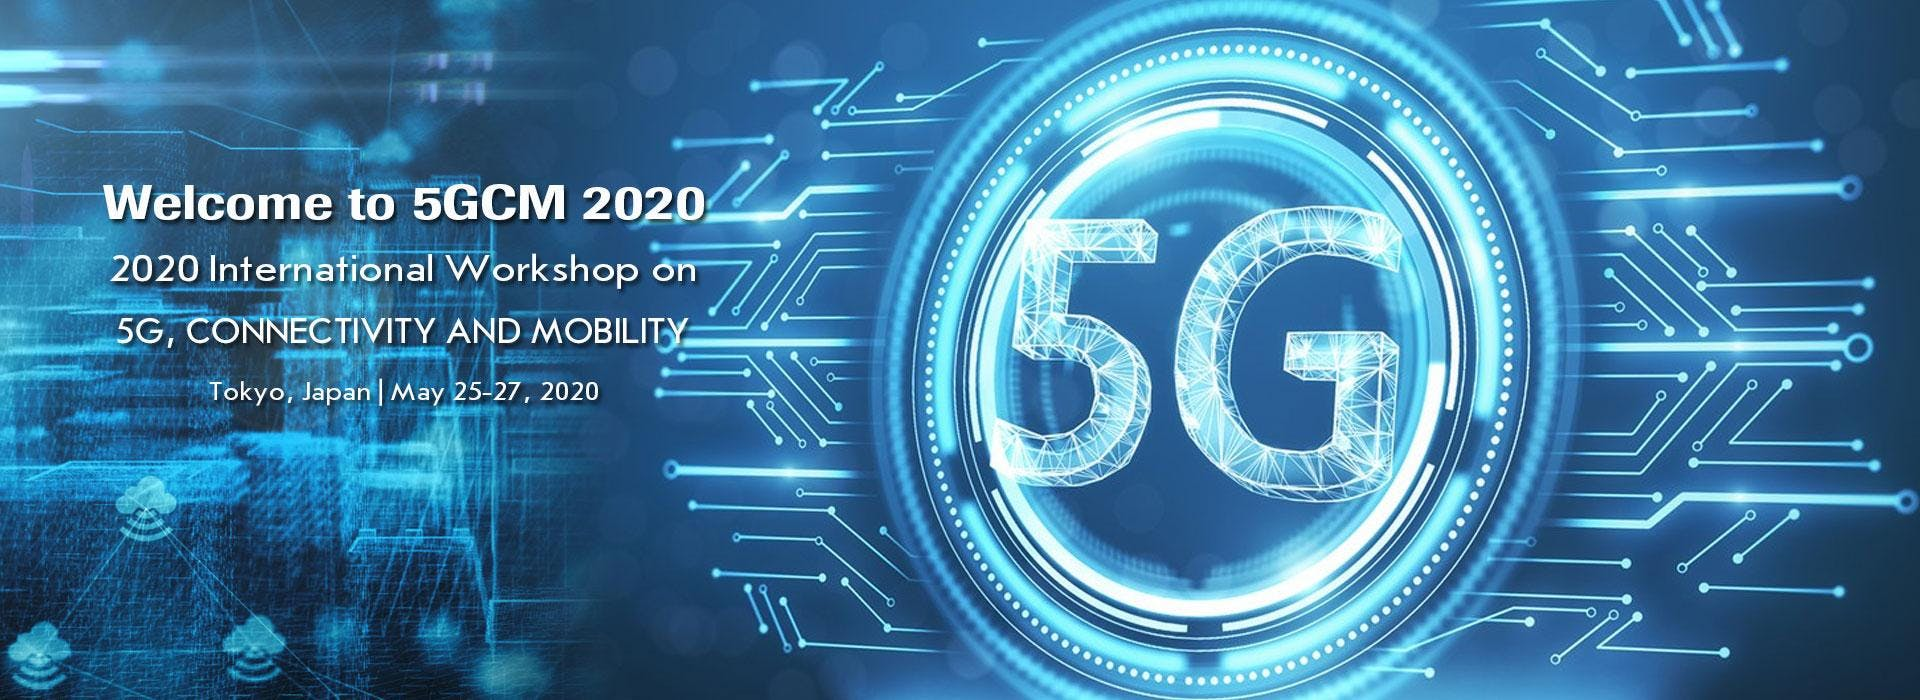 2020 International Workshop on 5G Connectivity and Mobility (5GCM 2020)